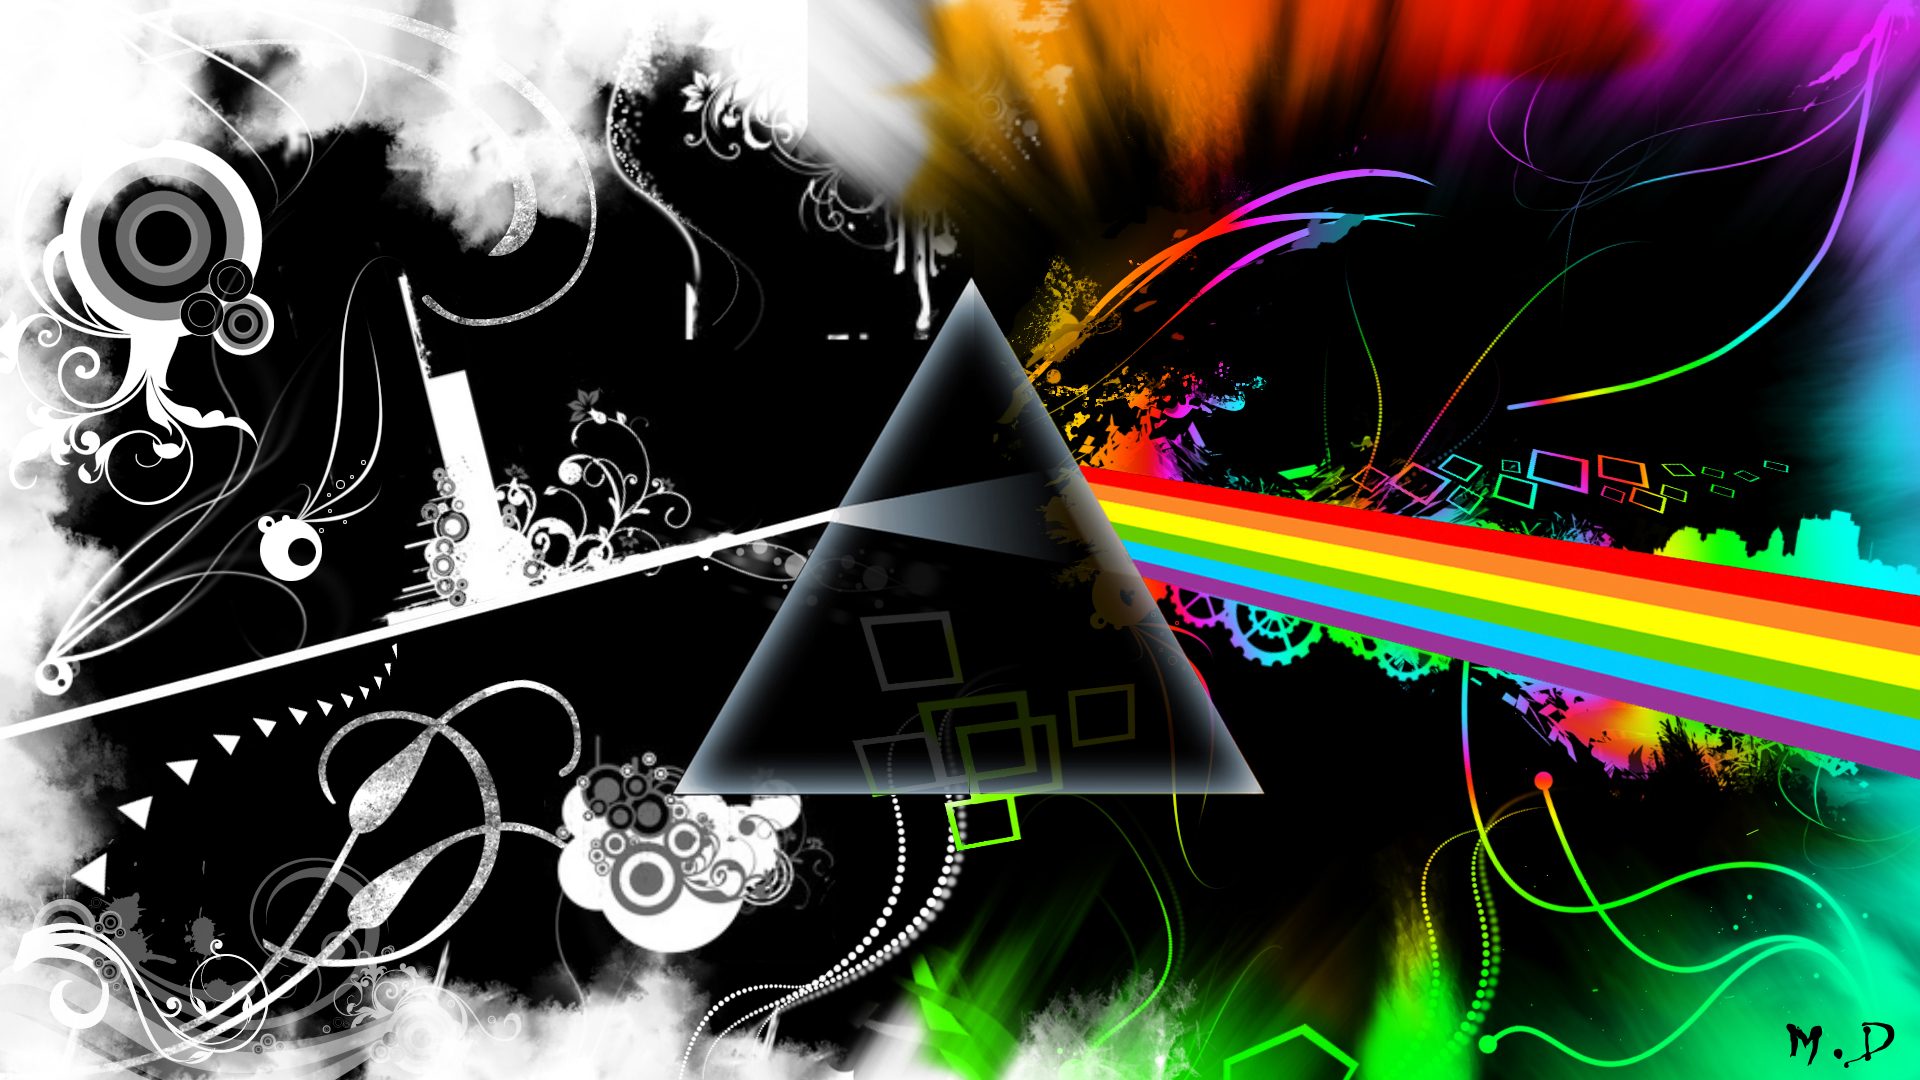 Abstract Nook Free Wallpaper Pink Floyd Wallpaper